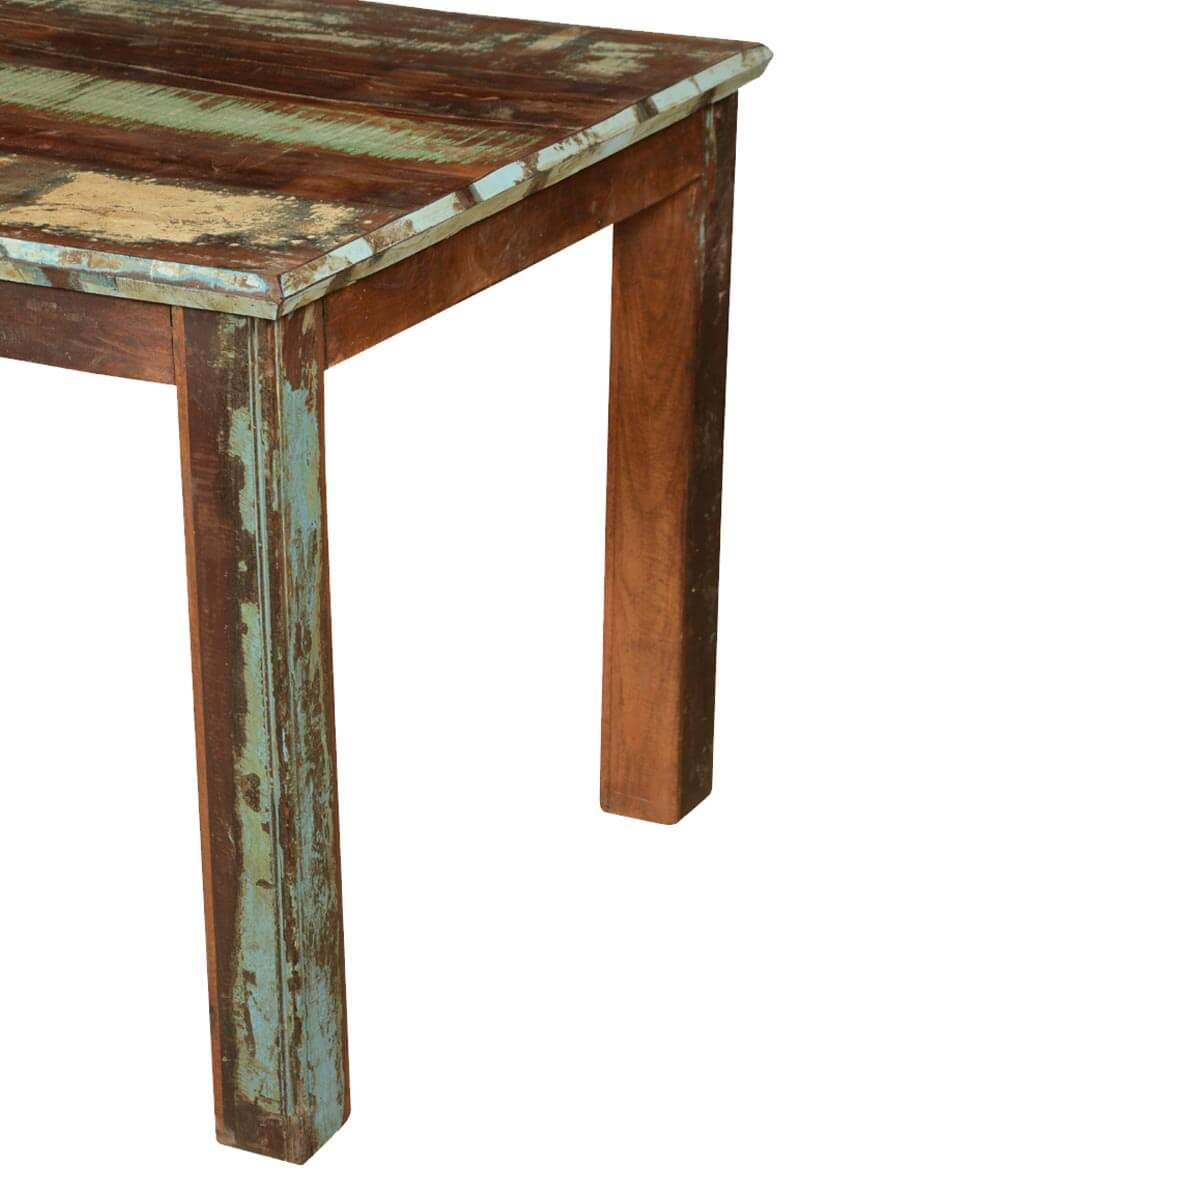 French Quarter Rustic Reclaimed Wood Striped Dining Table : 64134 from www.sierralivingconcepts.com size 1200 x 1200 jpeg 118kB